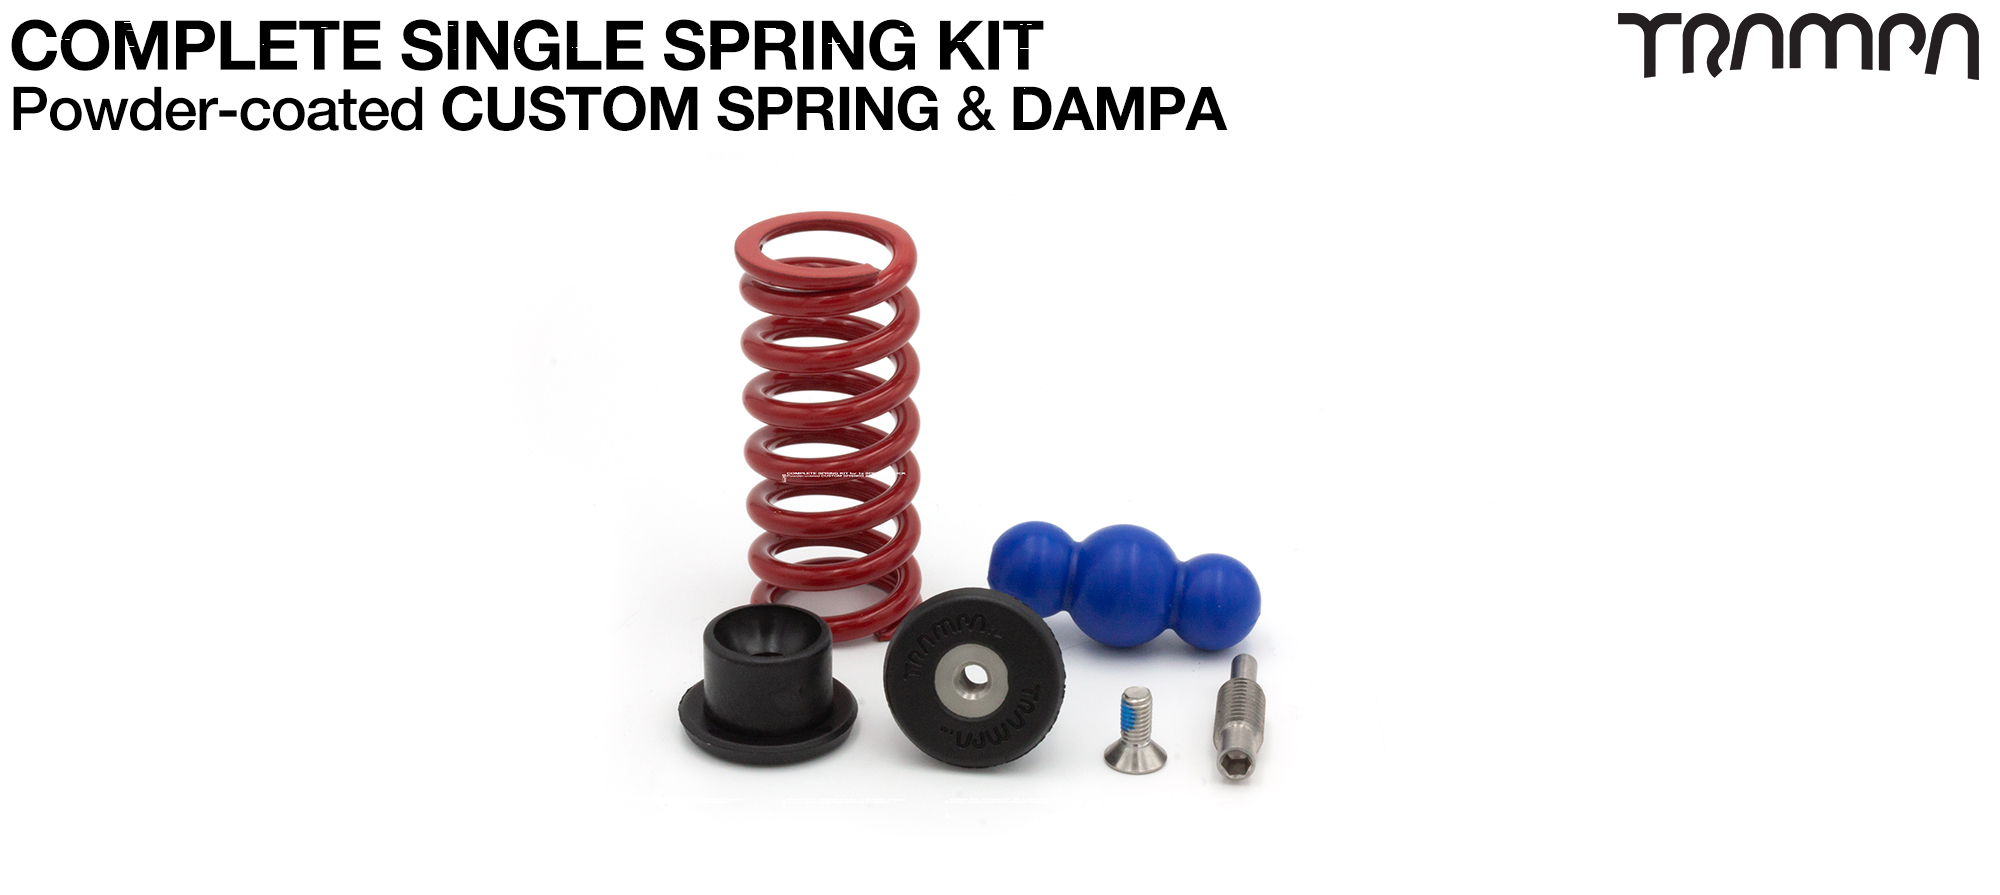 Complete Spring kit for 1x Spring = 1x Spring 1x Dampa 2x Spring Retainers 1x Spring Adjuster & 1 M5x12mm Countersunk Bolt